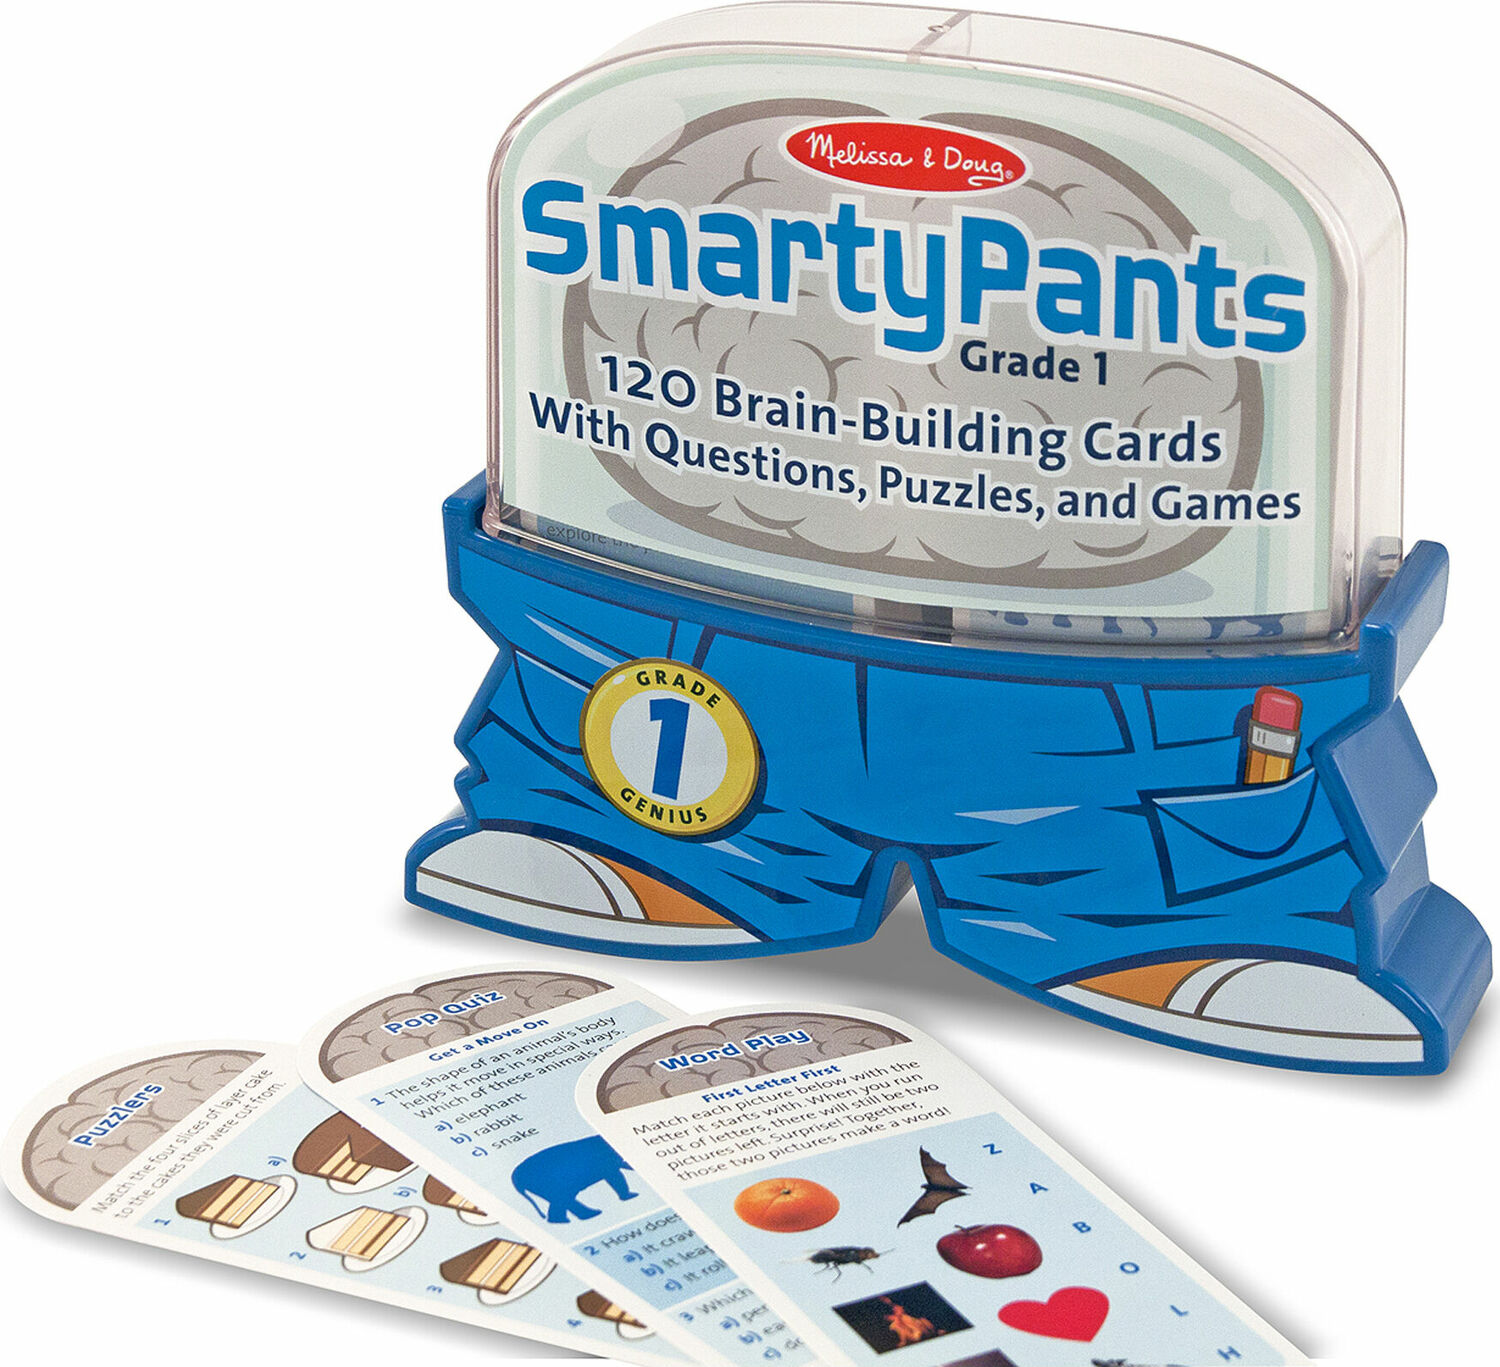 Toys For Grade 1 : Smarty pants st grade card set amazing toys